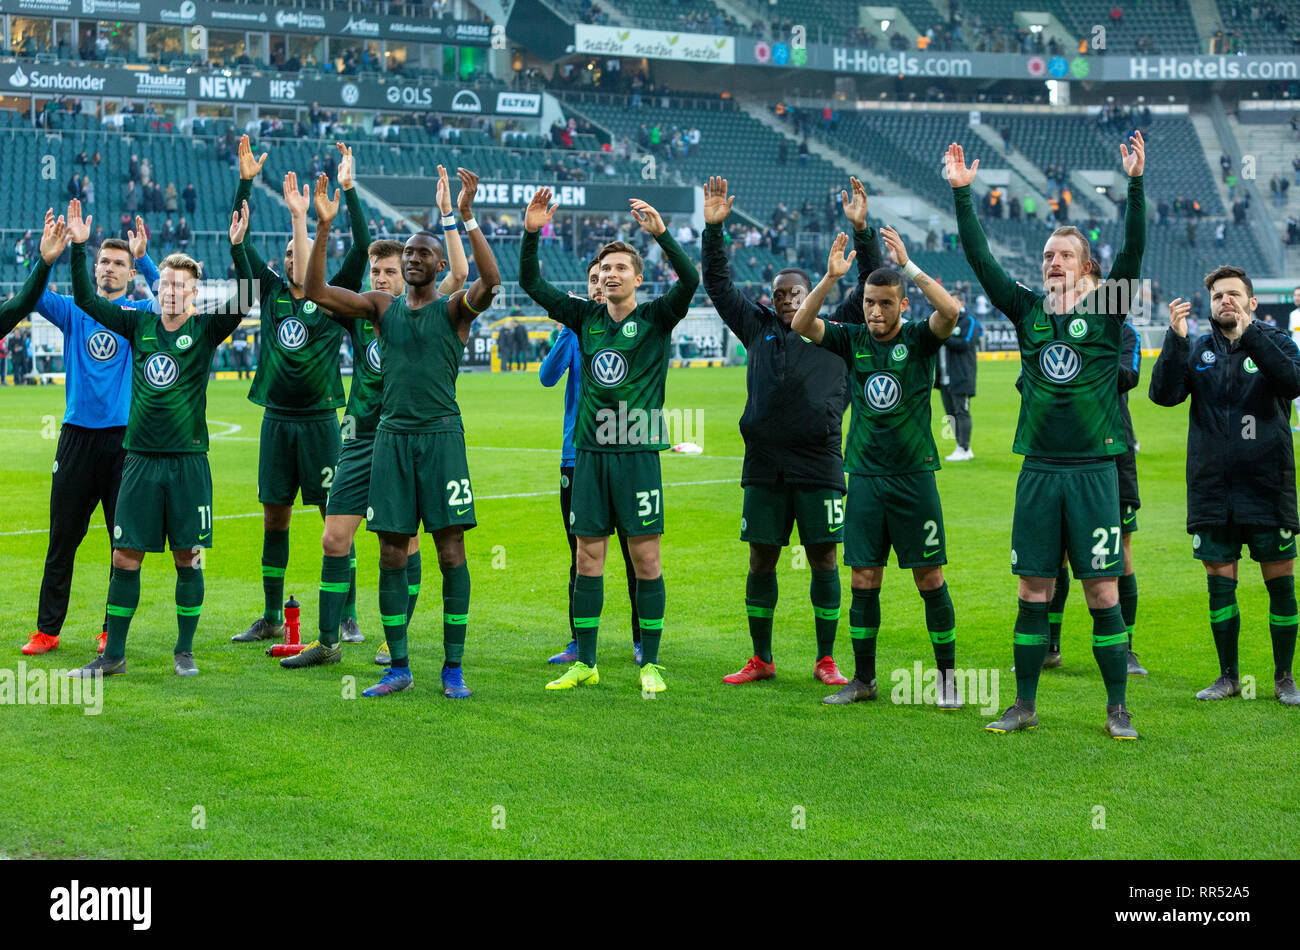 sports, football, Bundesliga, 2018/2019, Borussia Moenchengladbach vs VfL Wolfsburg 0-3, Stadium Borussia Park, after the game Wolfsburg players and football fans rejoicing at the win, DFL REGULATIONS PROHIBIT ANY USE OF PHOTOGRAPHS AS IMAGE SEQUENCES AND/OR QUASI-VIDEO - Stock Image